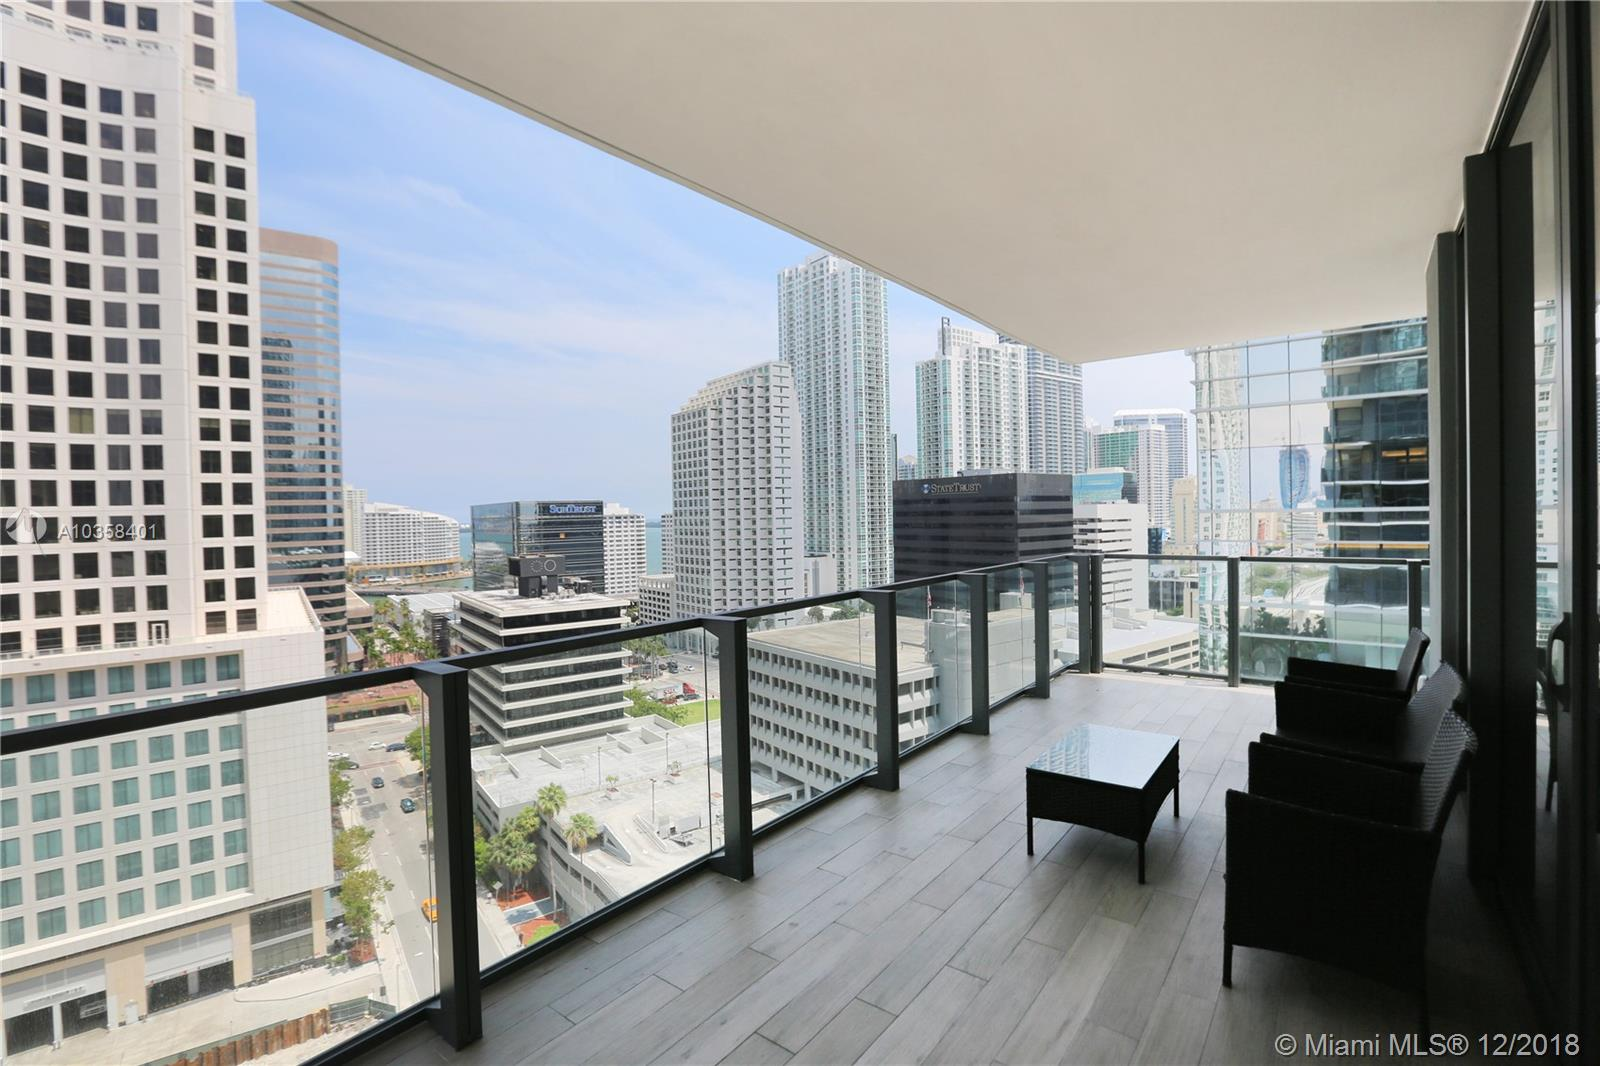 A Vendre : Brickell City Center